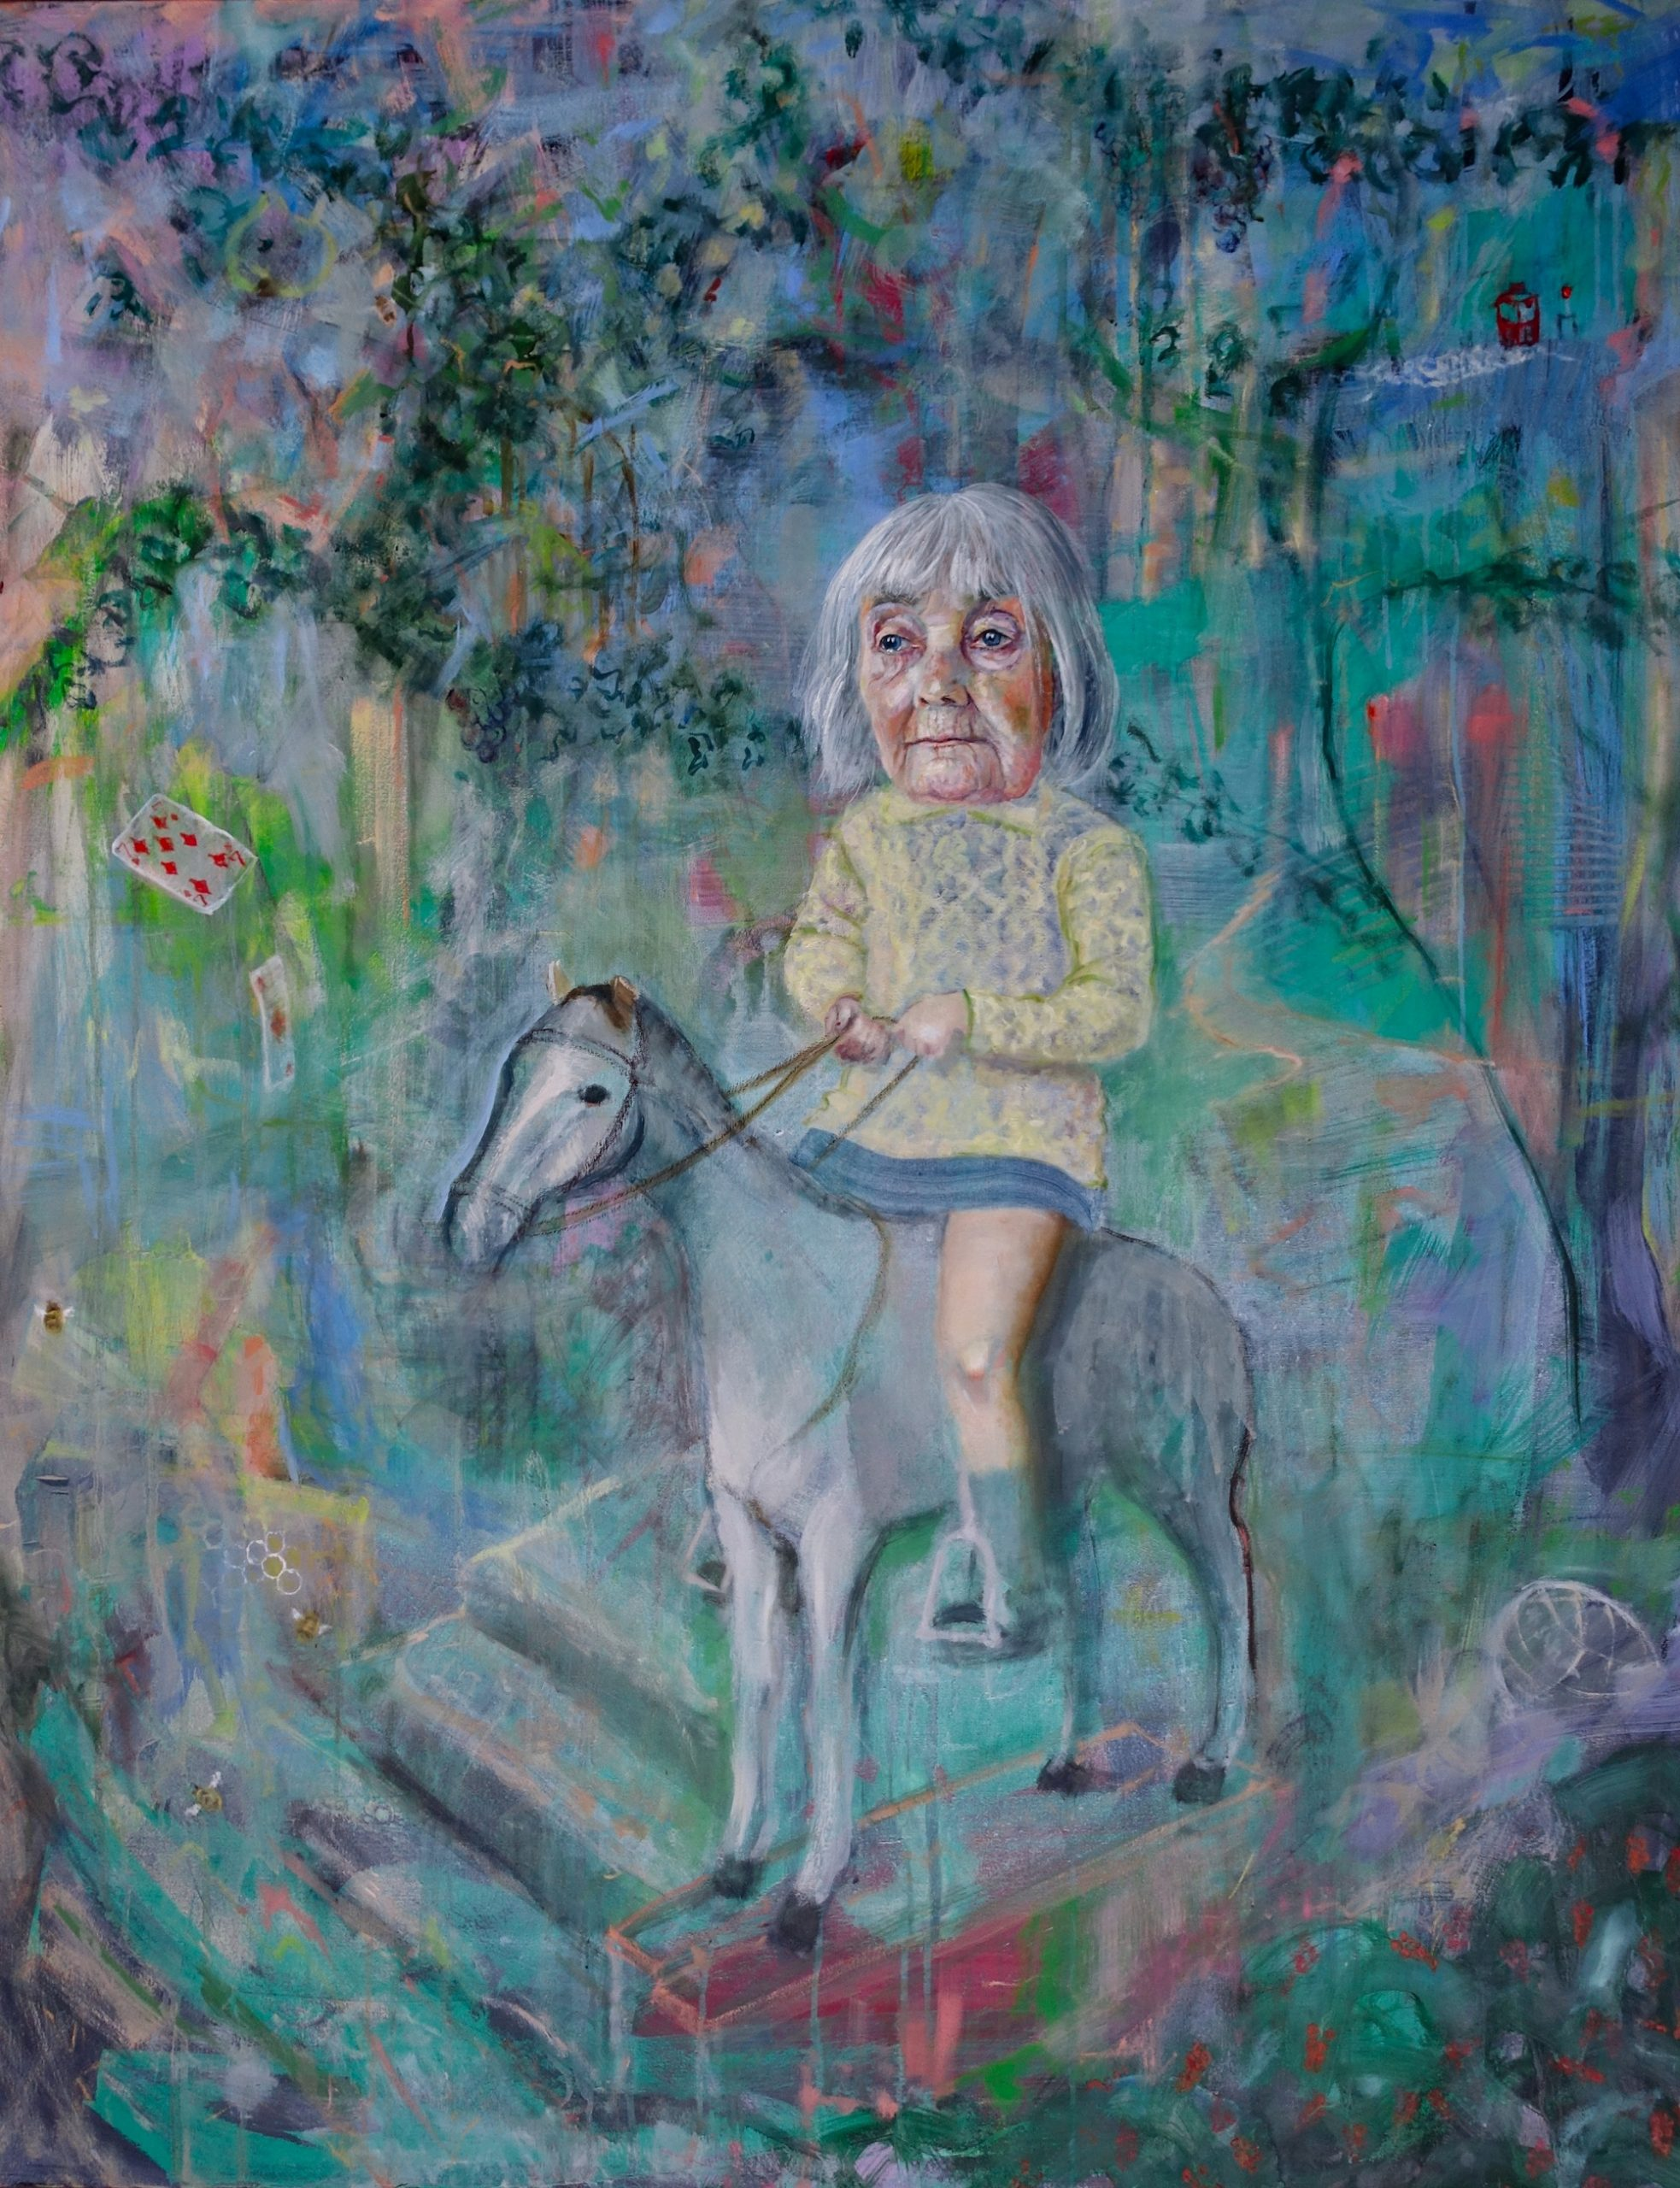 The stone horse, 2018 Jennifer Nieuwland Oil, pastel and chalk on canvas, 100 x 80 cm